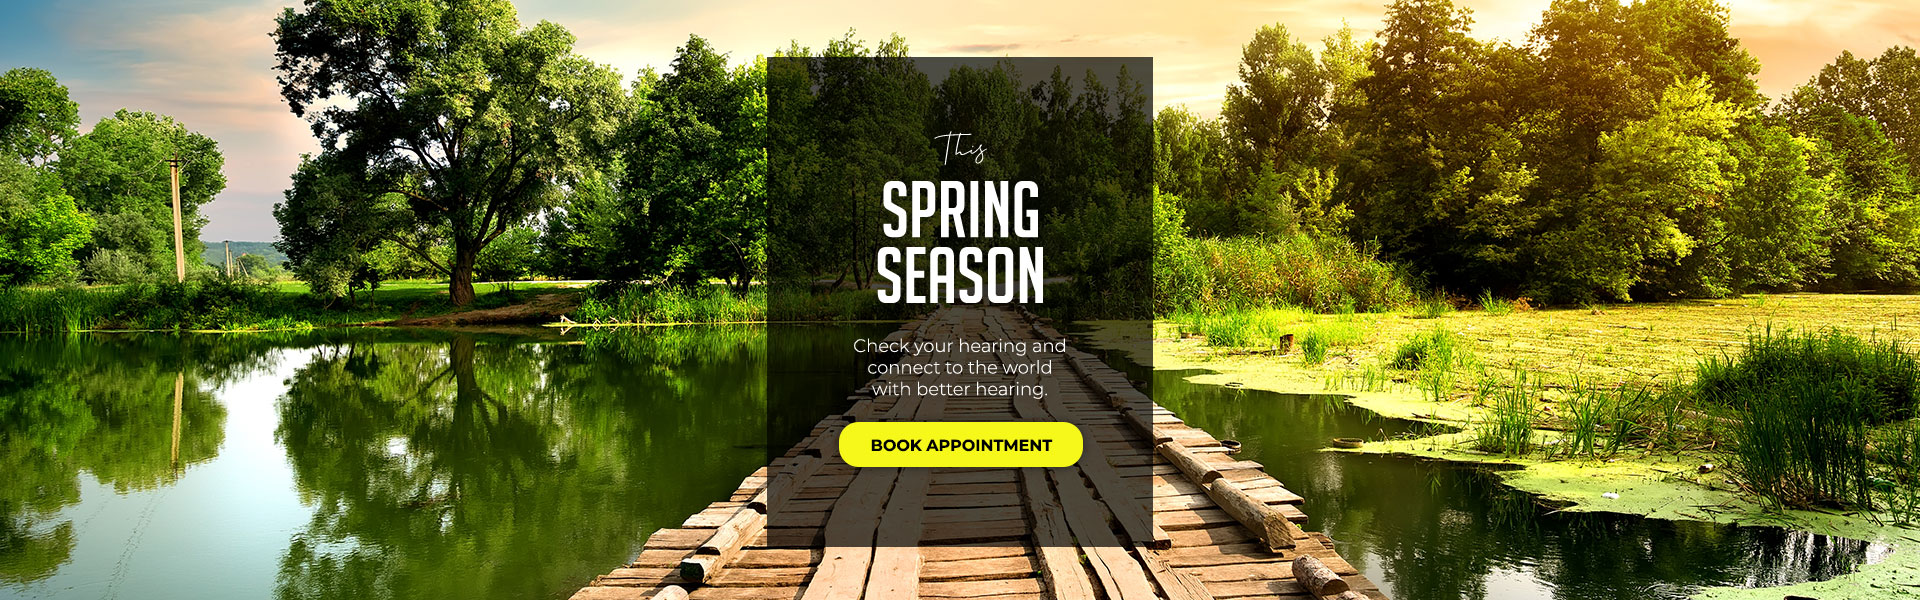 Hearing Evaluation - Nardelli Audiology